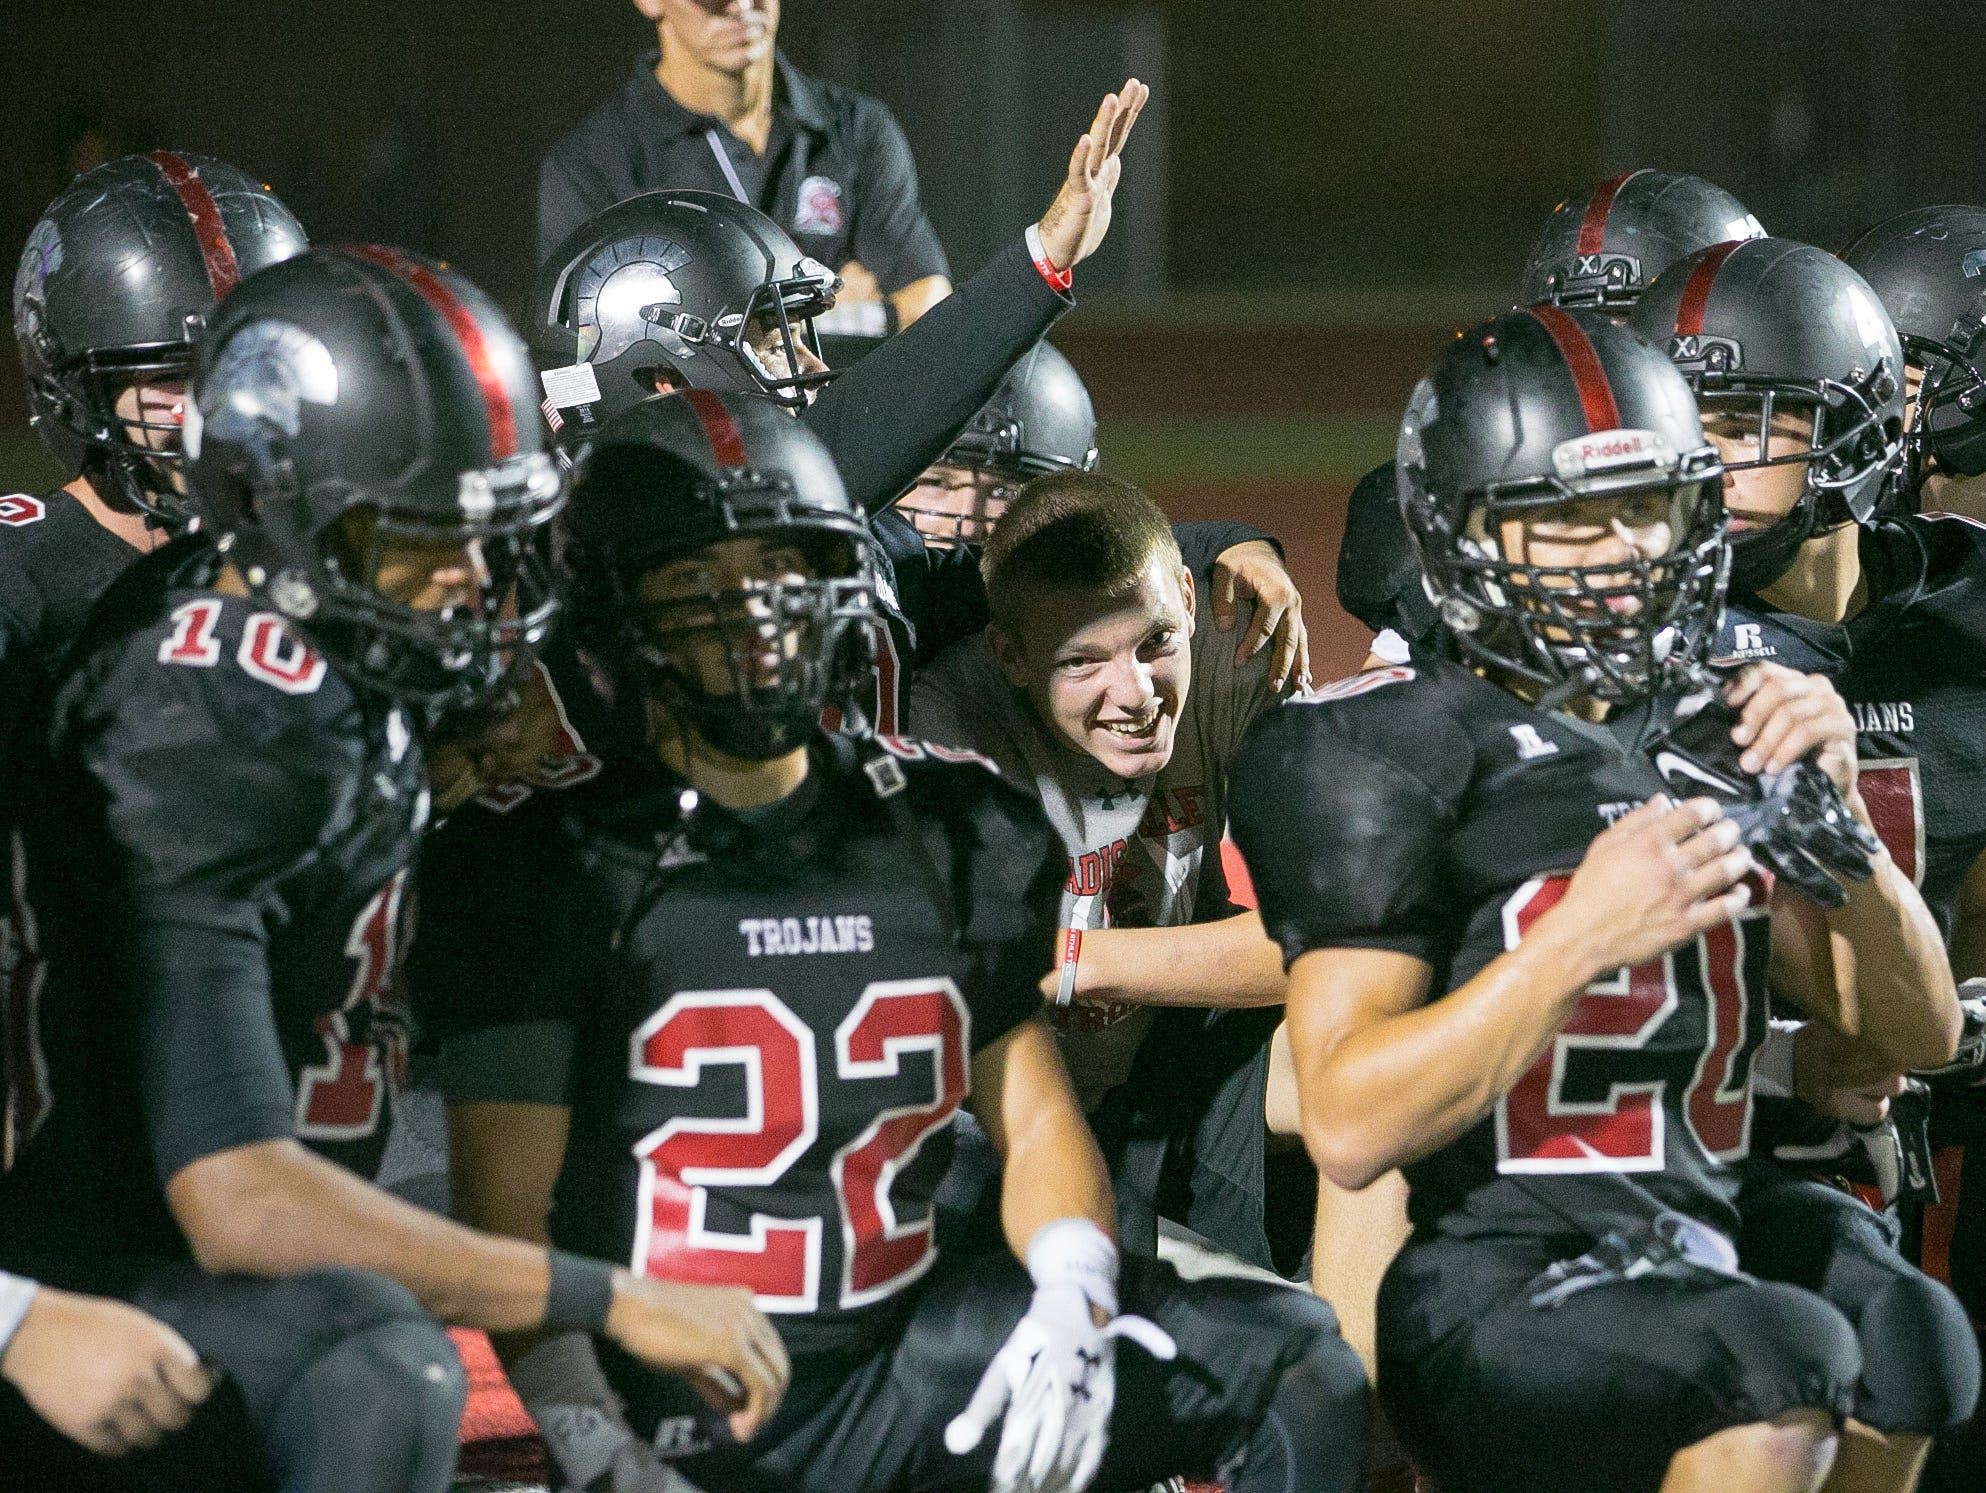 Phoenix Paradise Valley football players celebrate their win after their high school football game against Laveen Betty Fairfax in Phoenix on Friday, August 28, 2015.